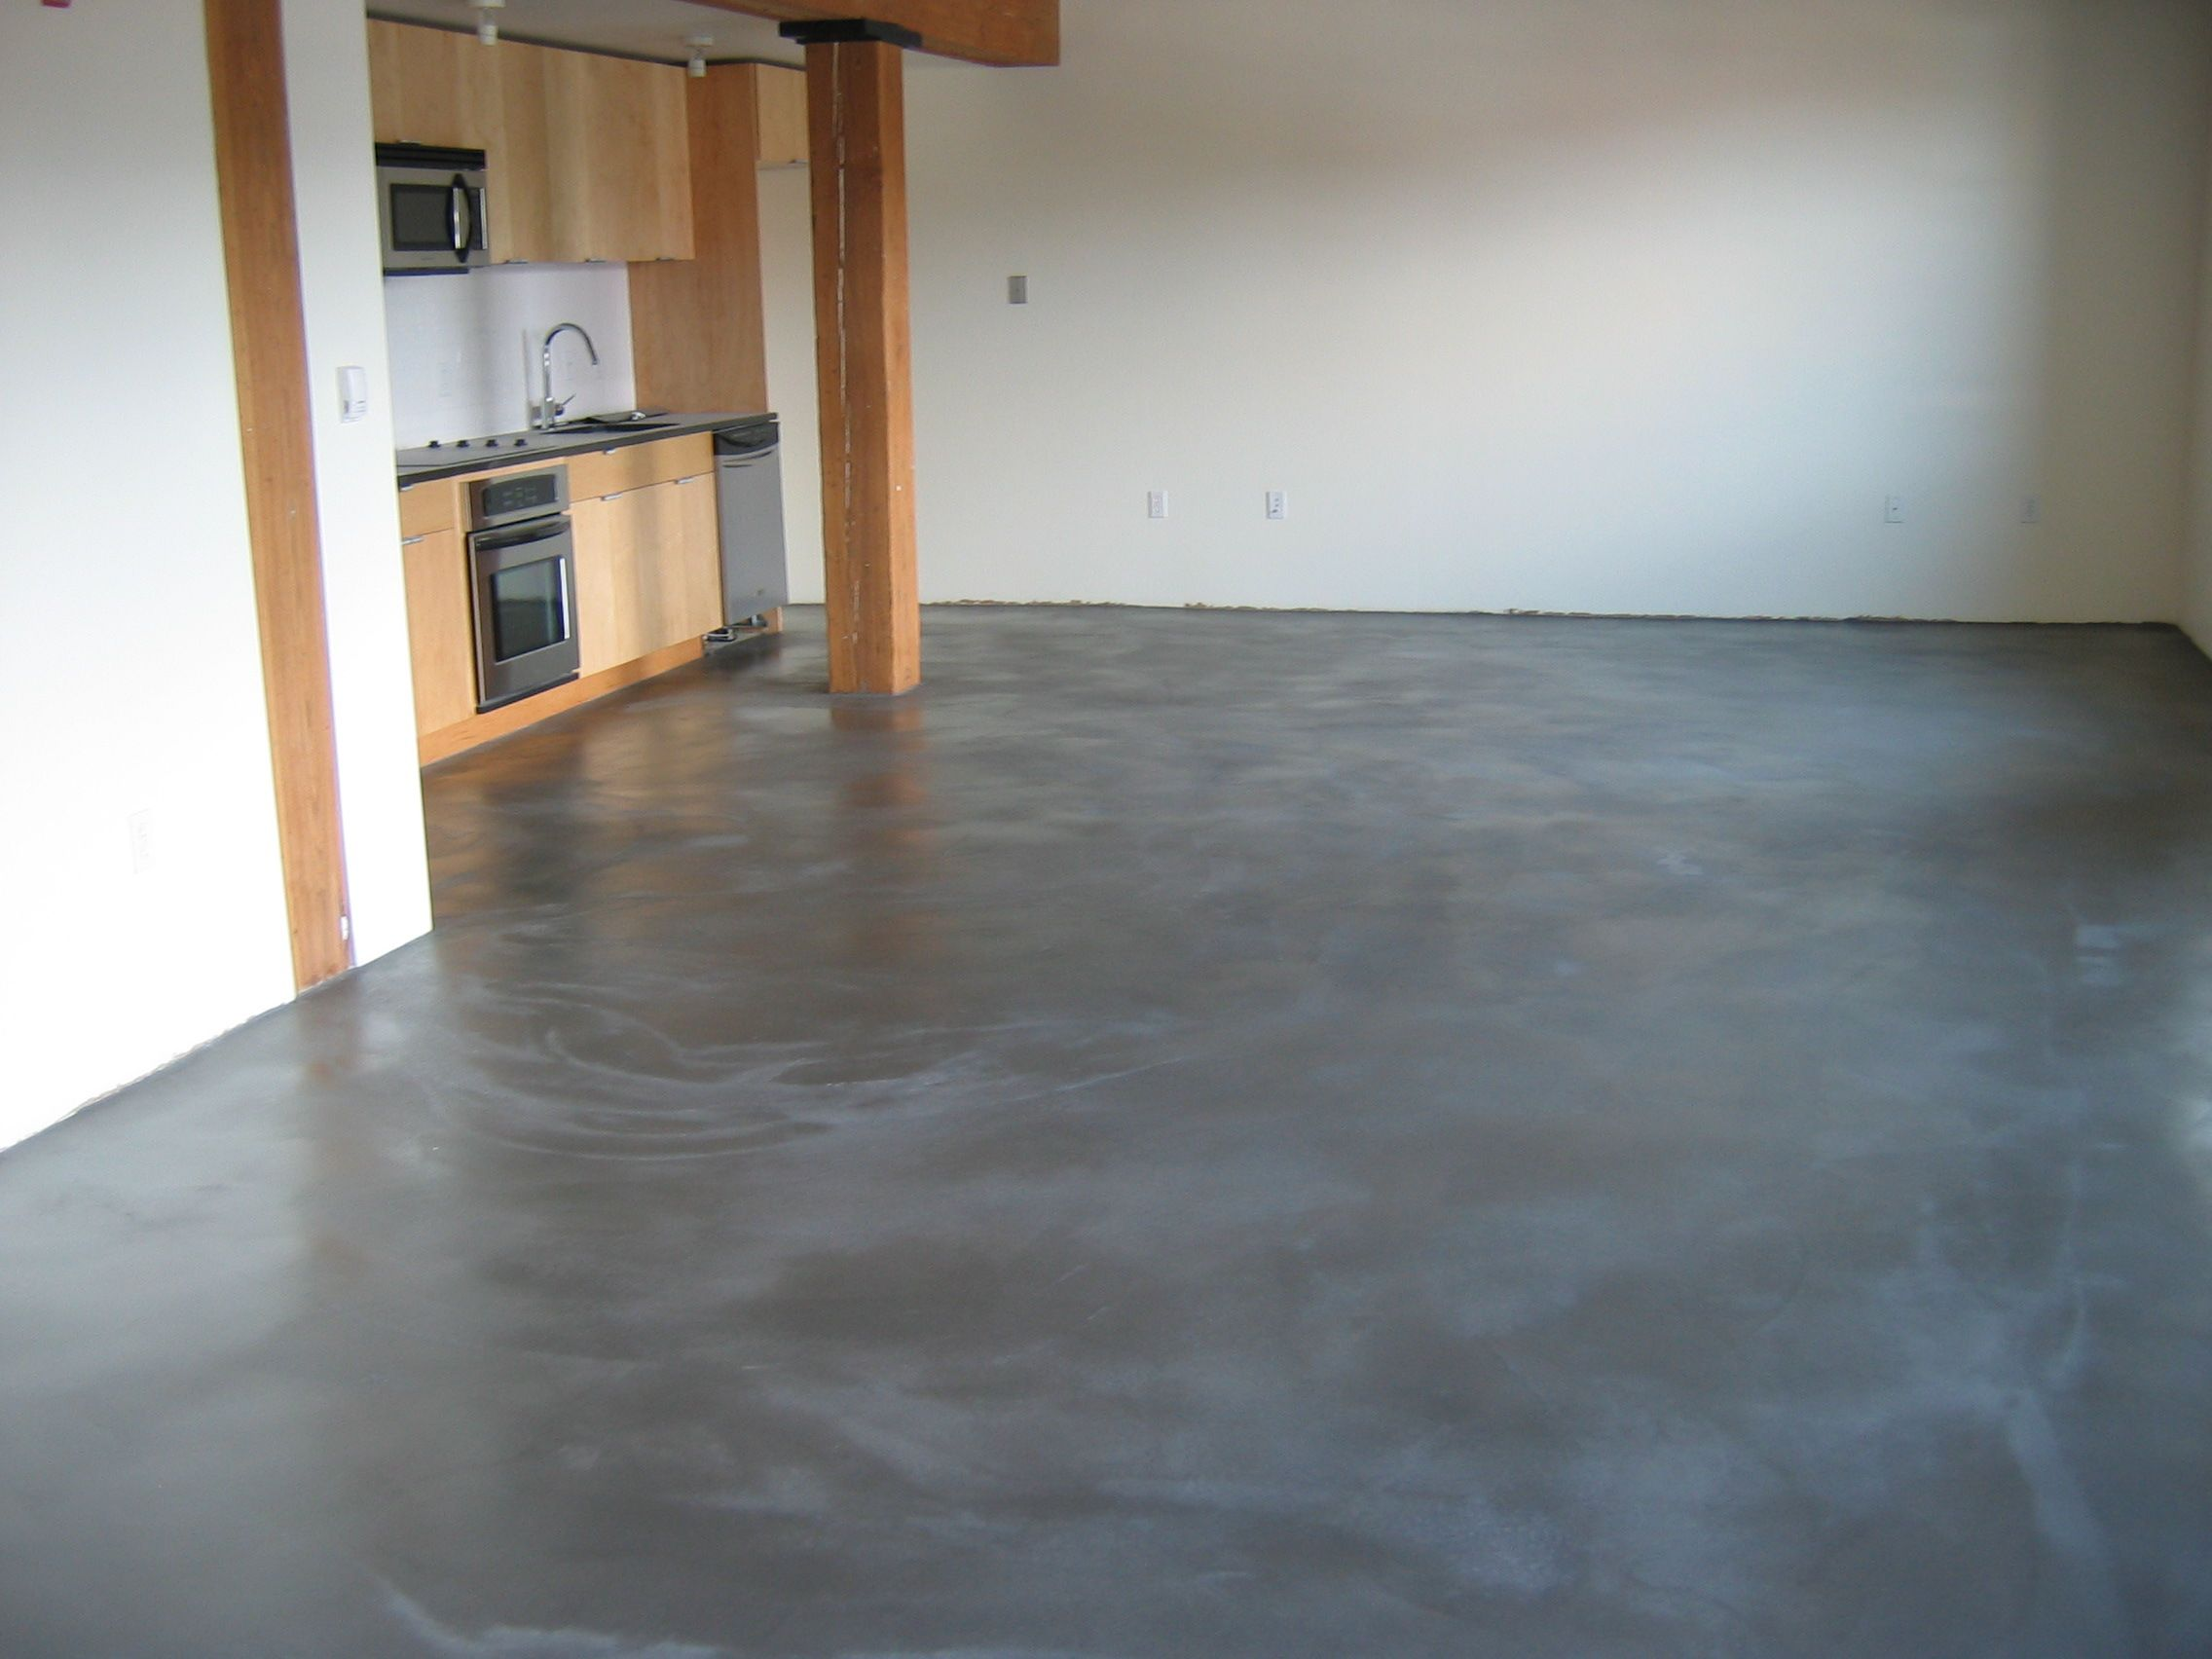 poured concrete floors | concrete polishing : concrete floor